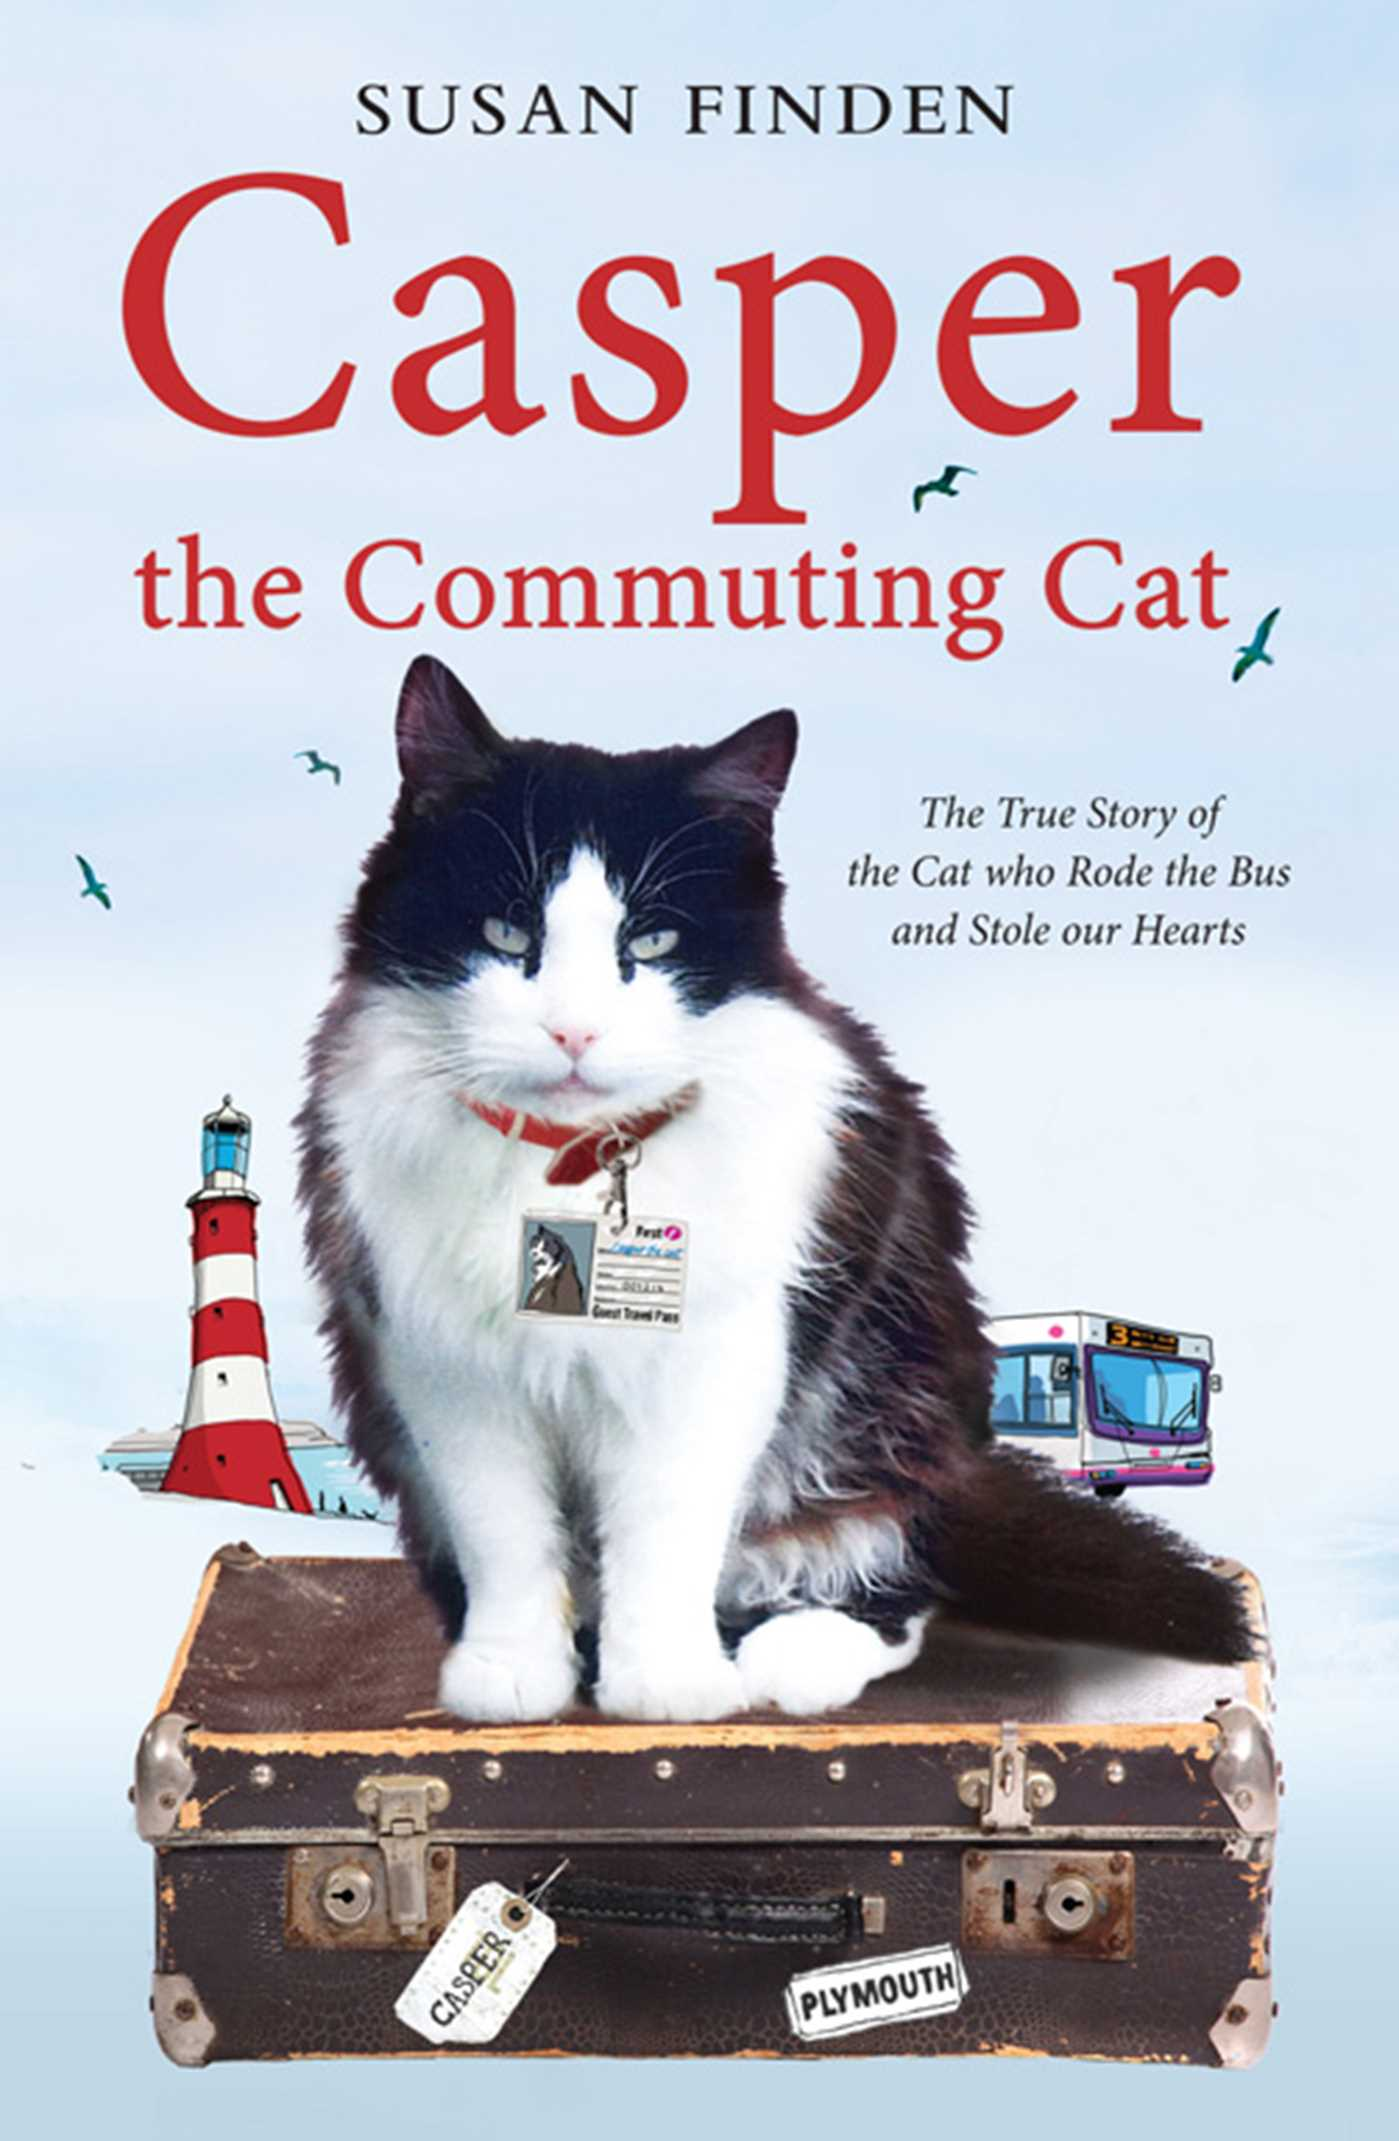 Casper-the-commuting-cat-9781849831758_hr